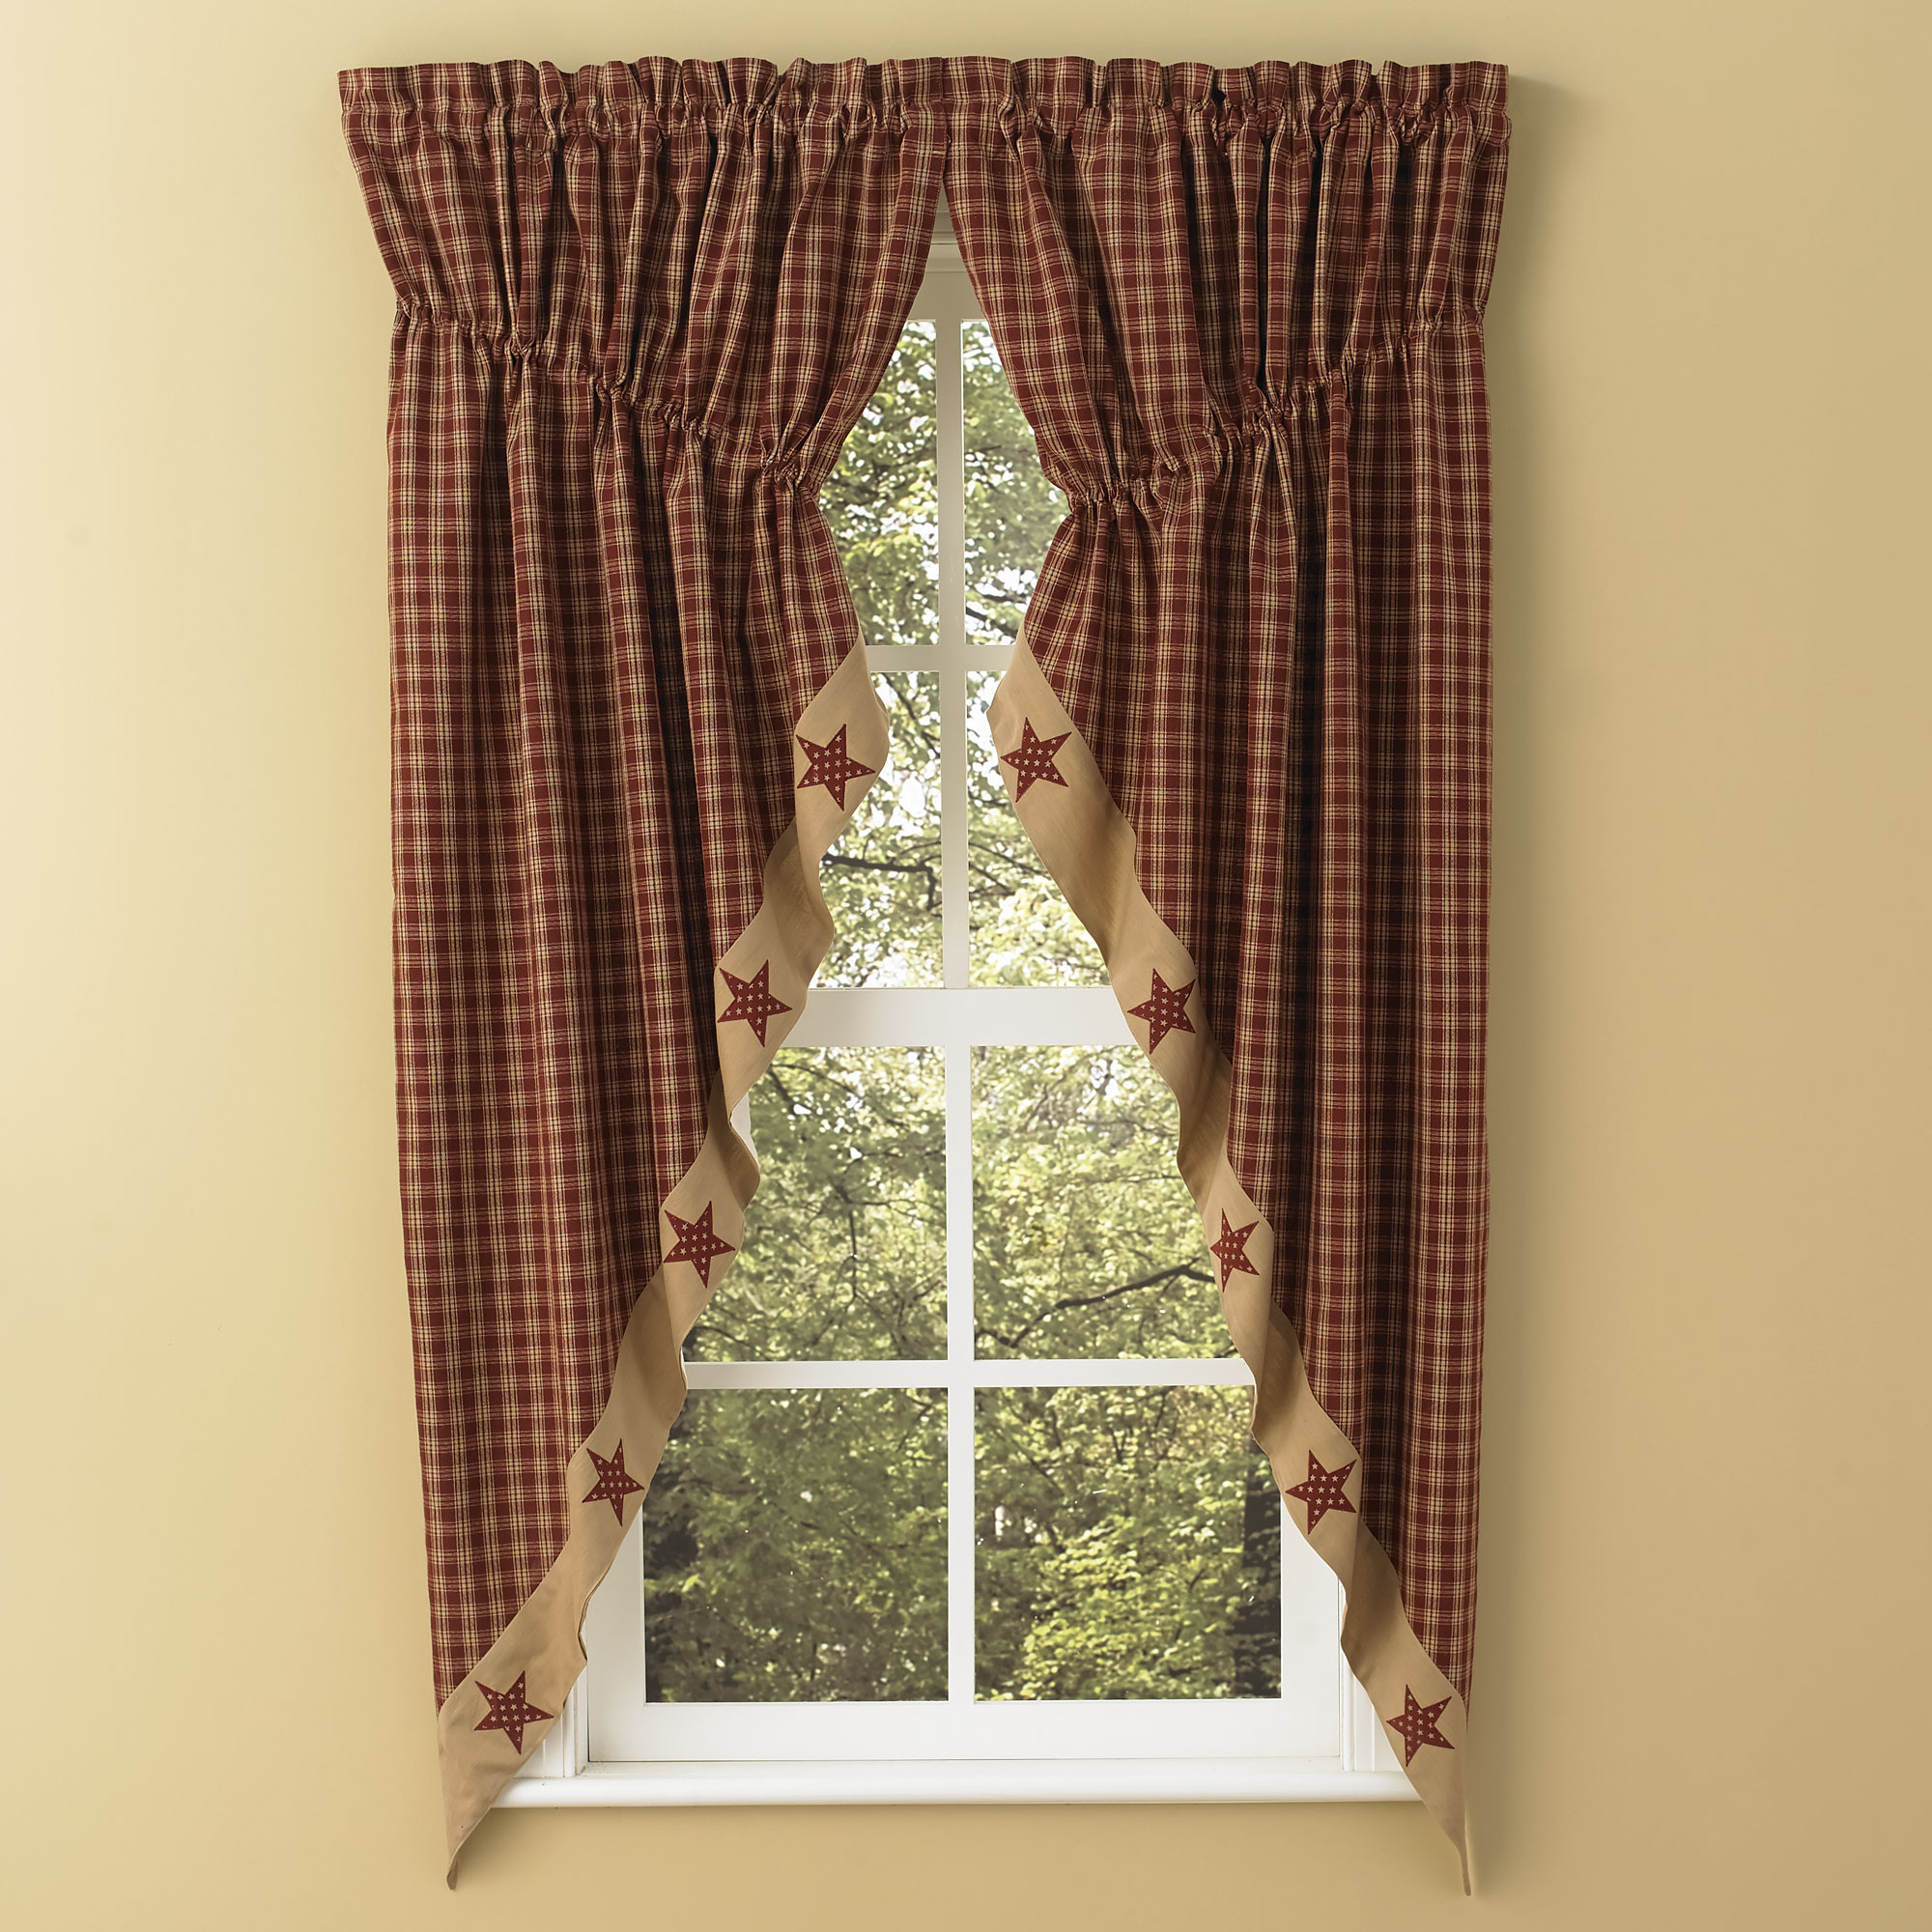 Gathered curtains - Sturbridge Star Patch Gathered Swags Prairie Curtains Park Designs Wine Or Black